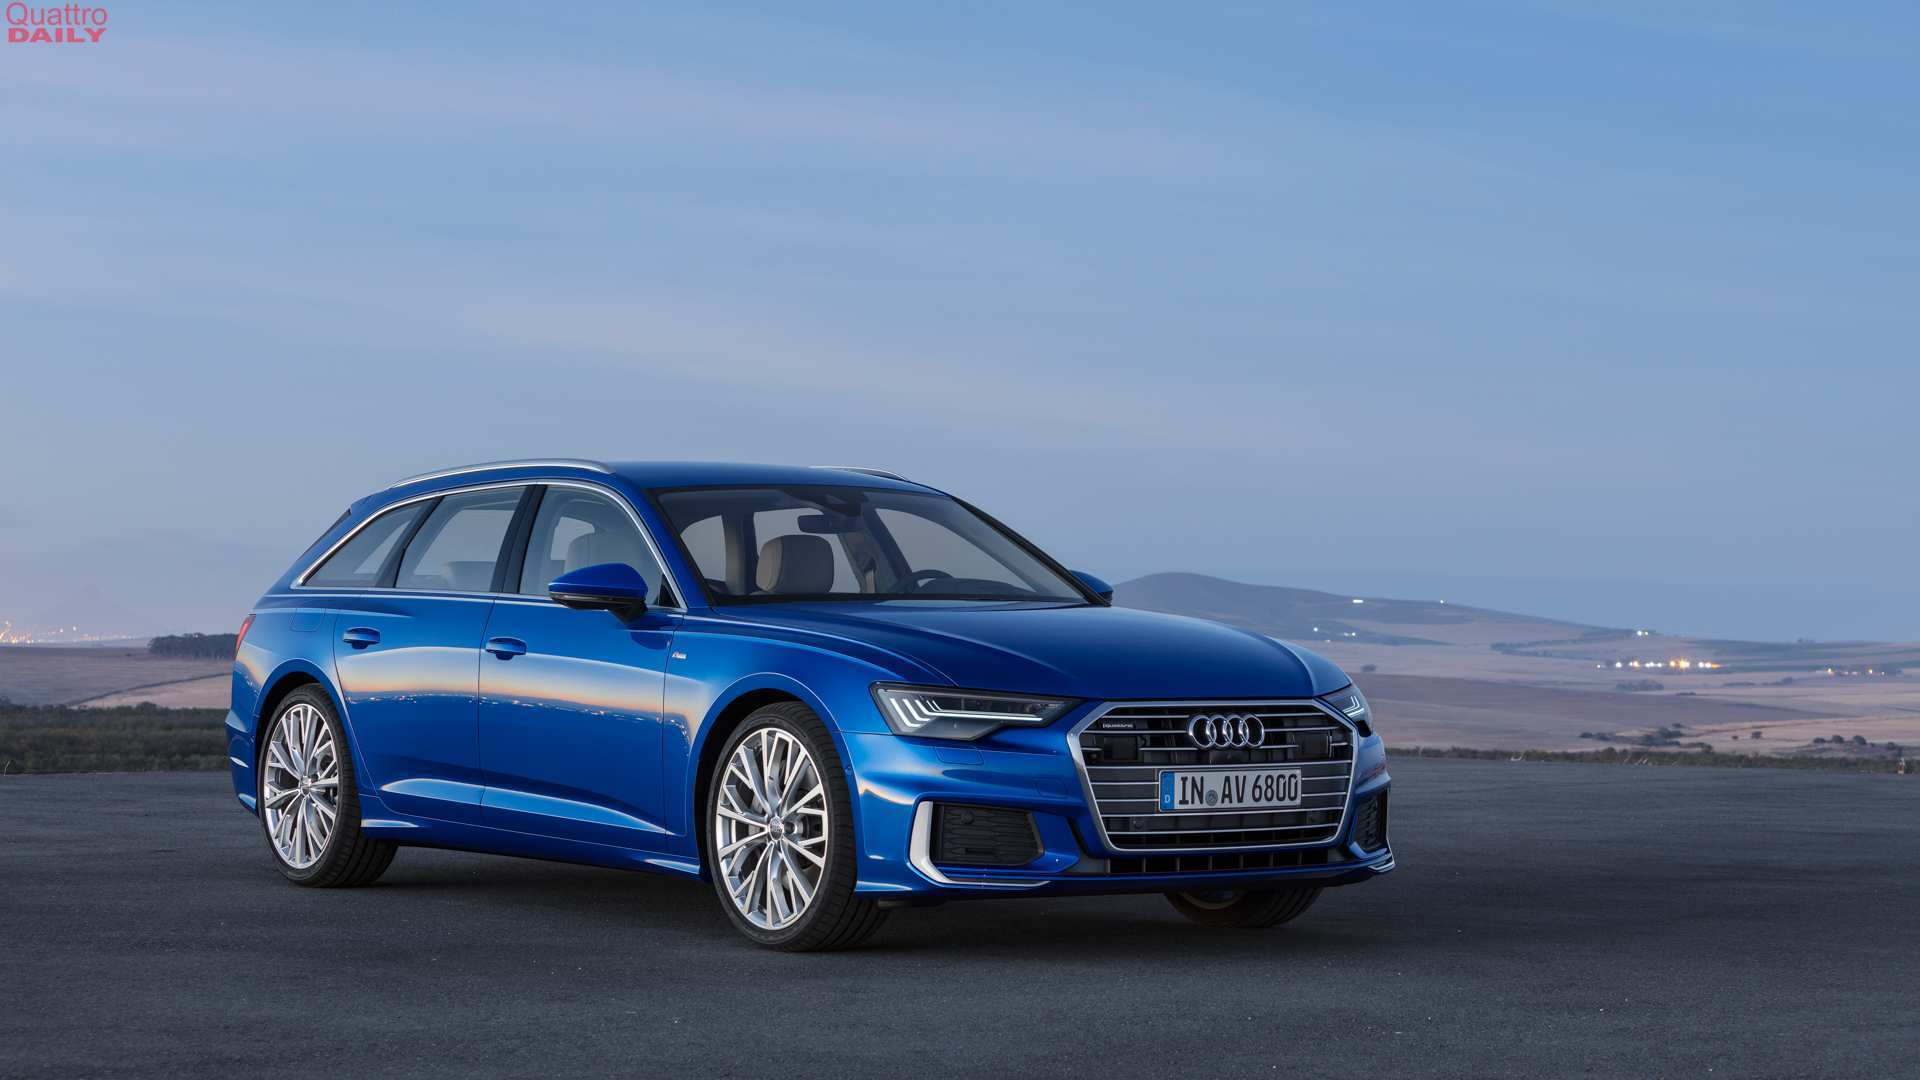 49 The 2020 Audi A6 2018 Pictures by 2020 Audi A6 2018